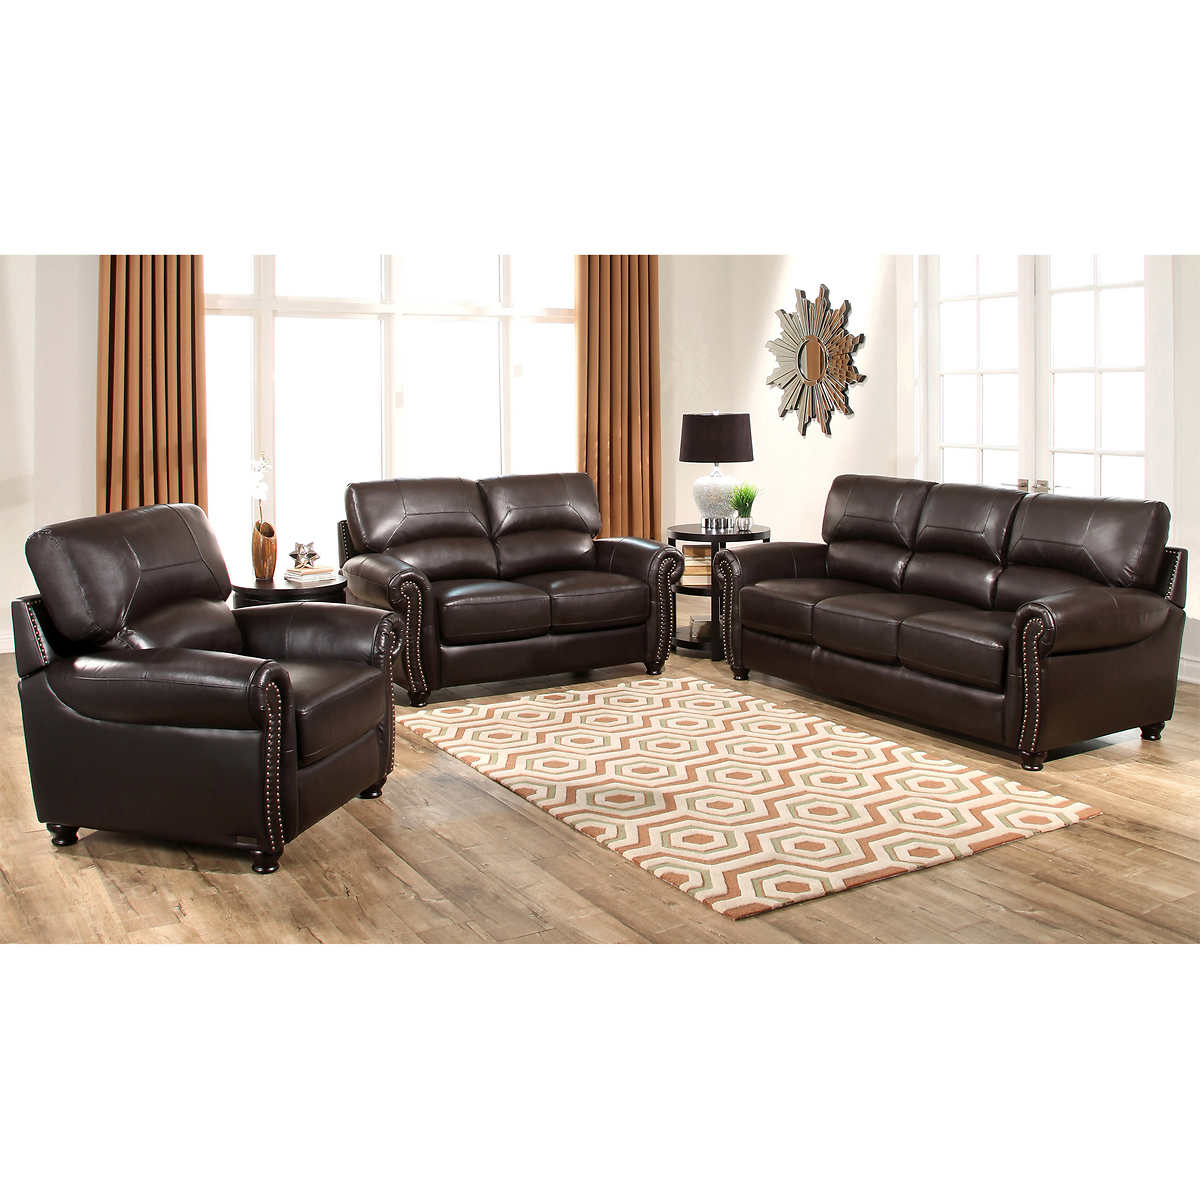 Tuscany Leather Sofa Set Abbyson Tuscan Top Grain Leather Chesterfield 2 Piece Living Room Thesofa